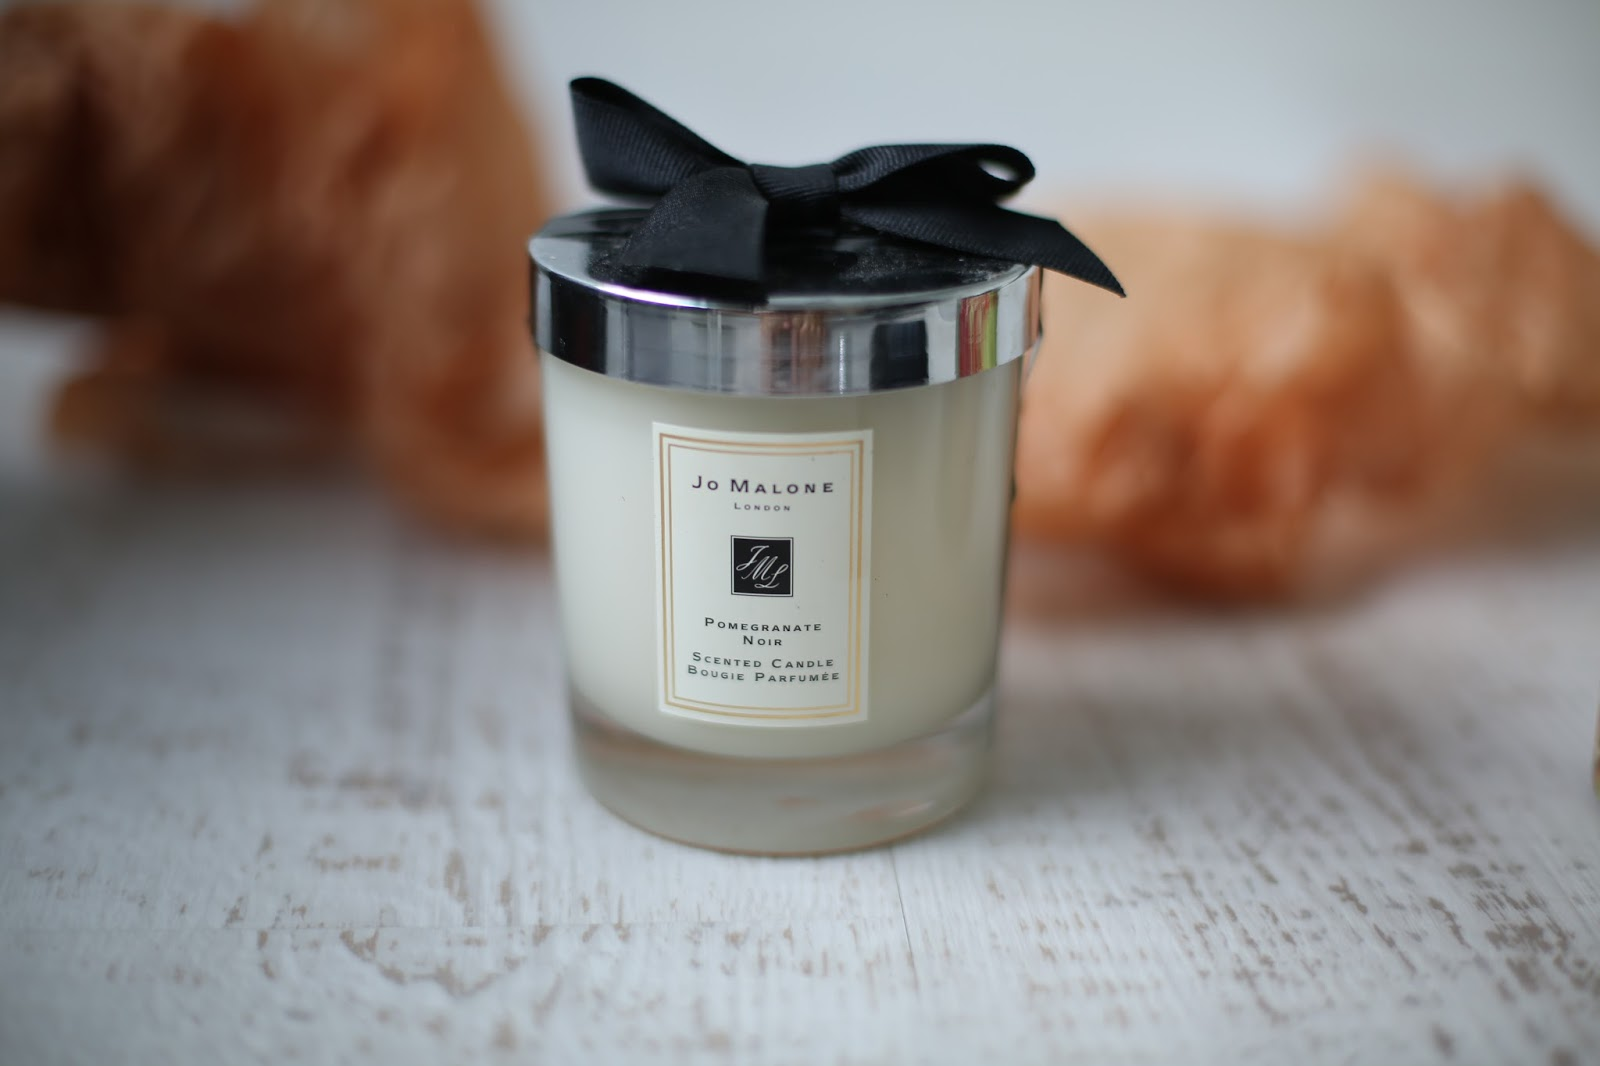 jo malone pomegranate noir candle review